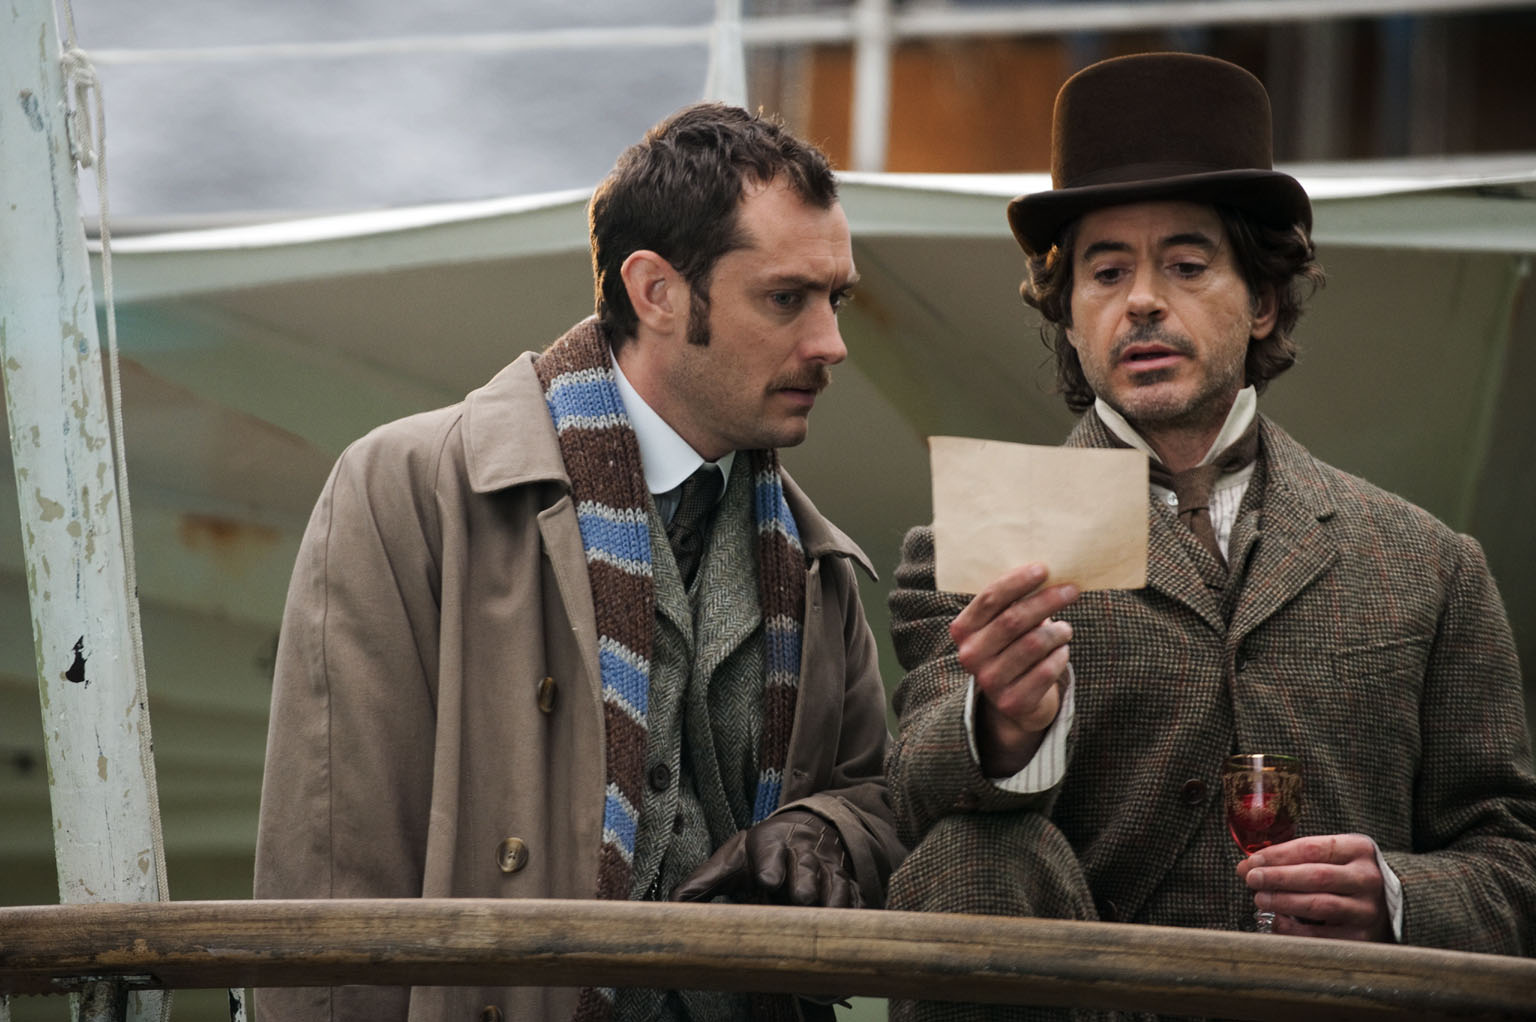 Baker Street bromance: Robert Downey Jr. (right) and Jude Law in 'Sherlock Holmes: A Game of Shadows.' | © 2011 VILLAGE ROADSHOW FILMS (BVI) LIMITED